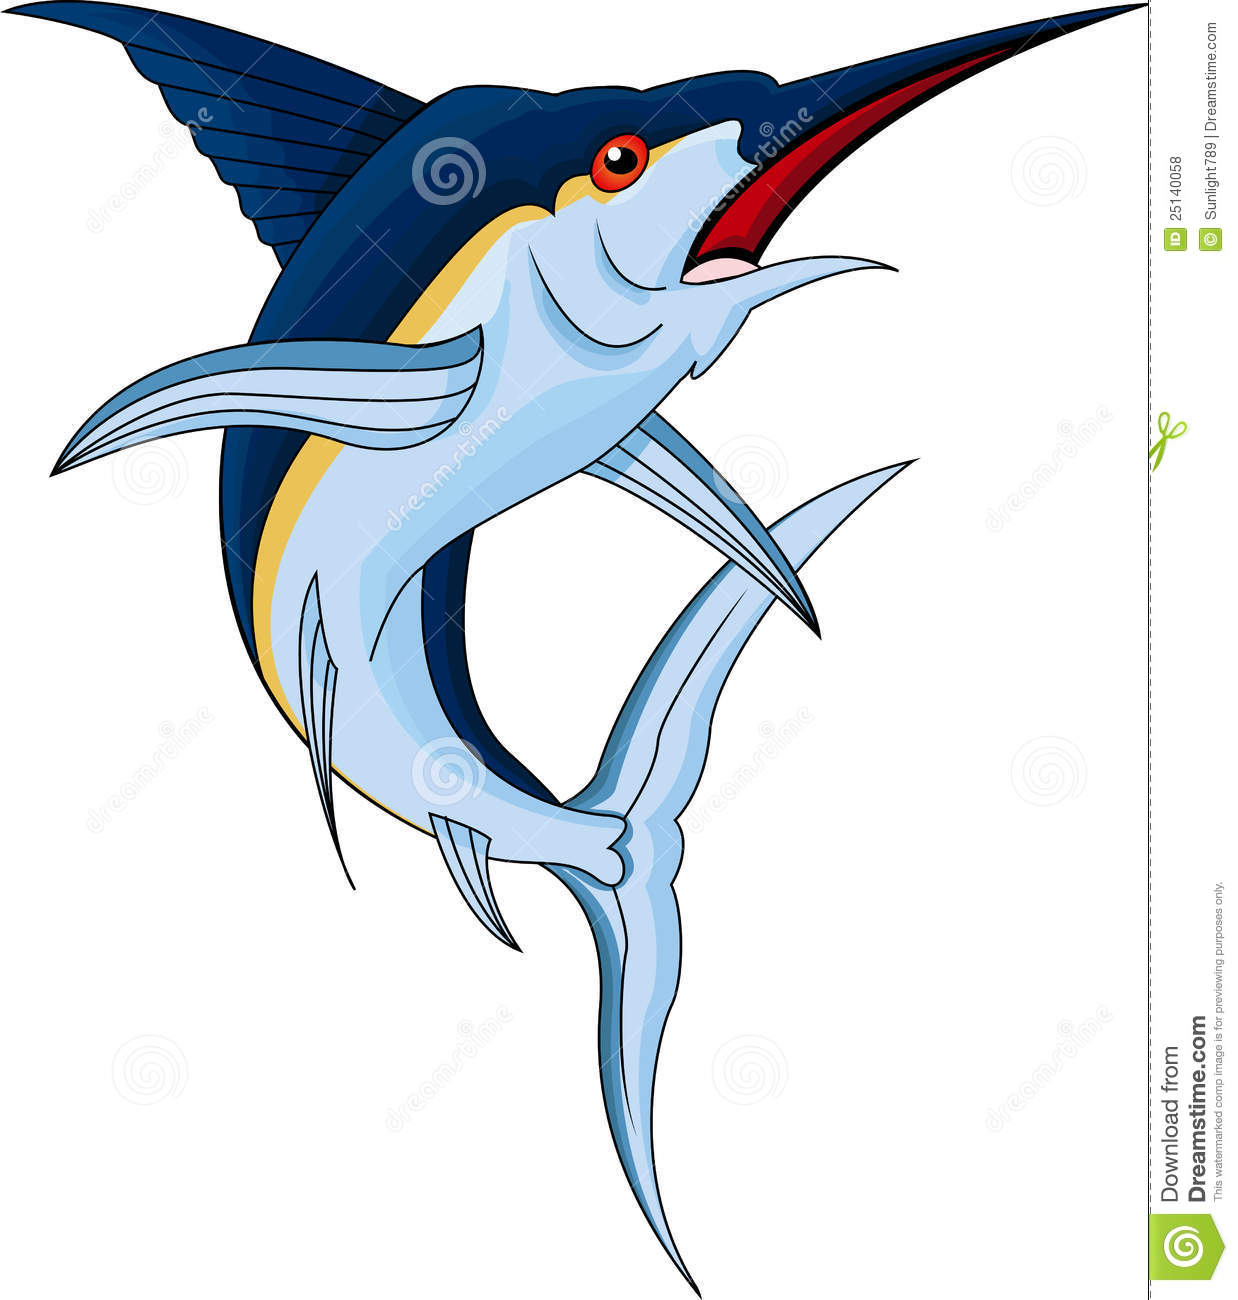 Marlin Fish Royalty Free Stock Photos - Image: 25140058